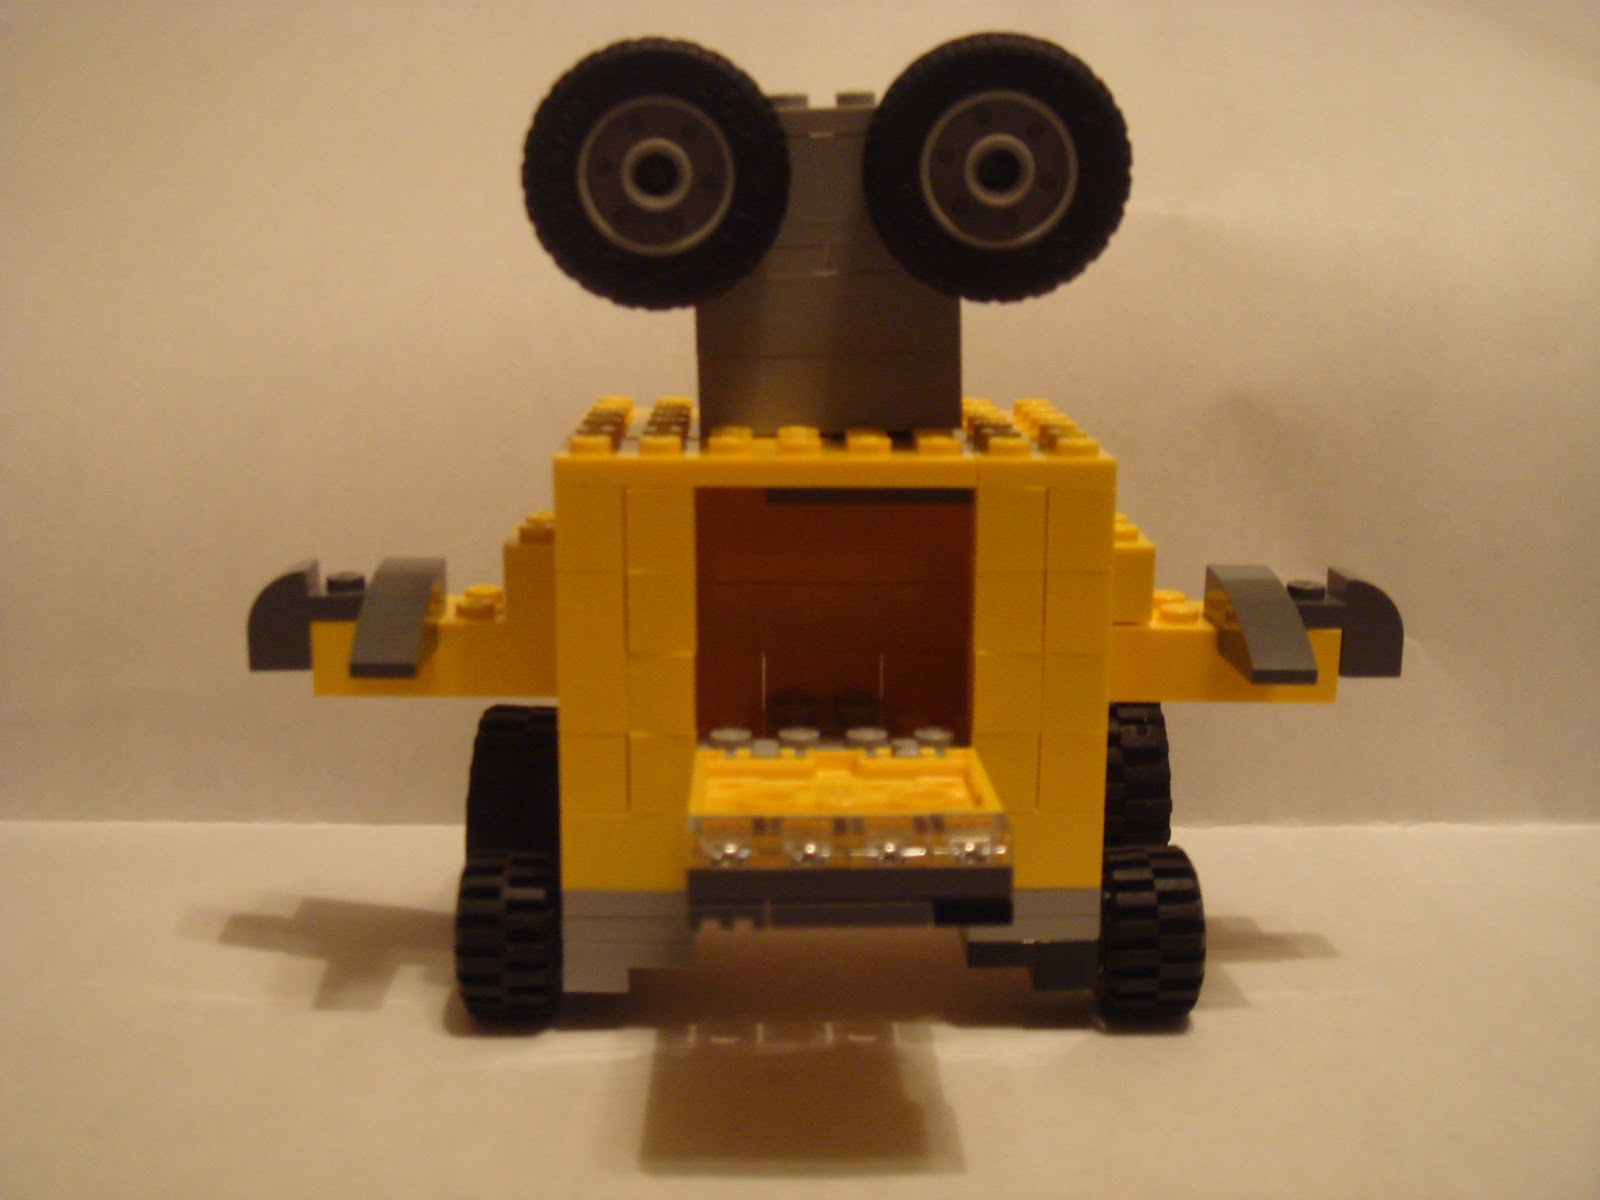 building legos with christ wall e lego creation. Black Bedroom Furniture Sets. Home Design Ideas